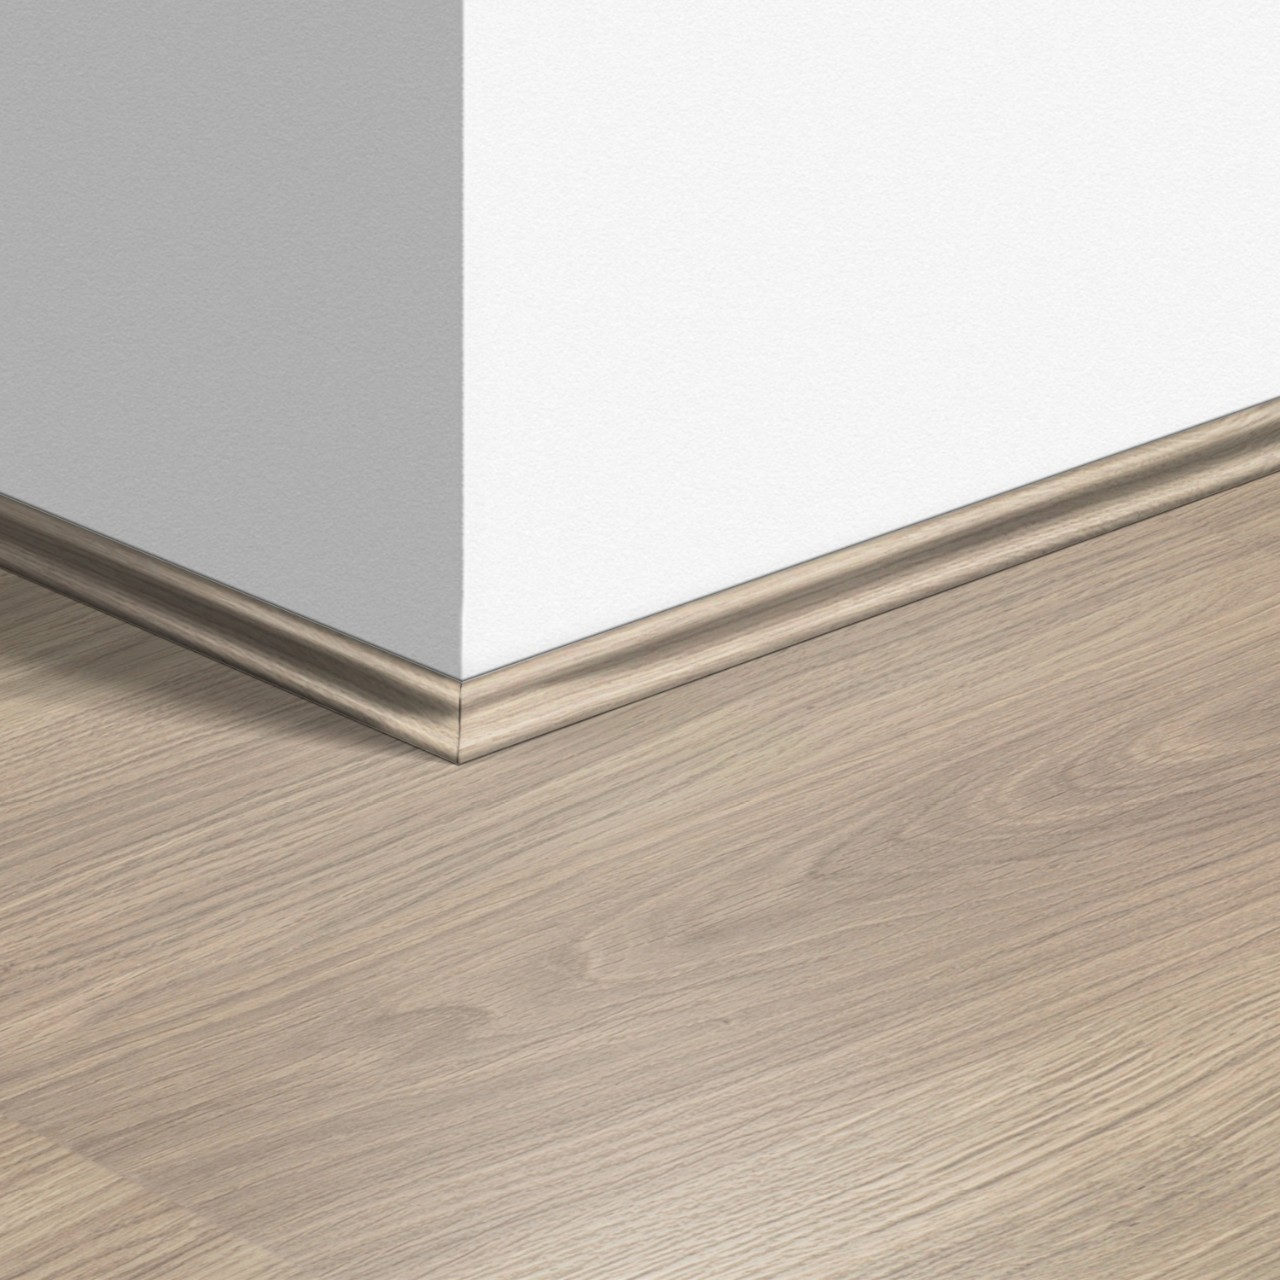 QSSCOT Laminate Accessories Light grey varnished oak QSSCOT01304